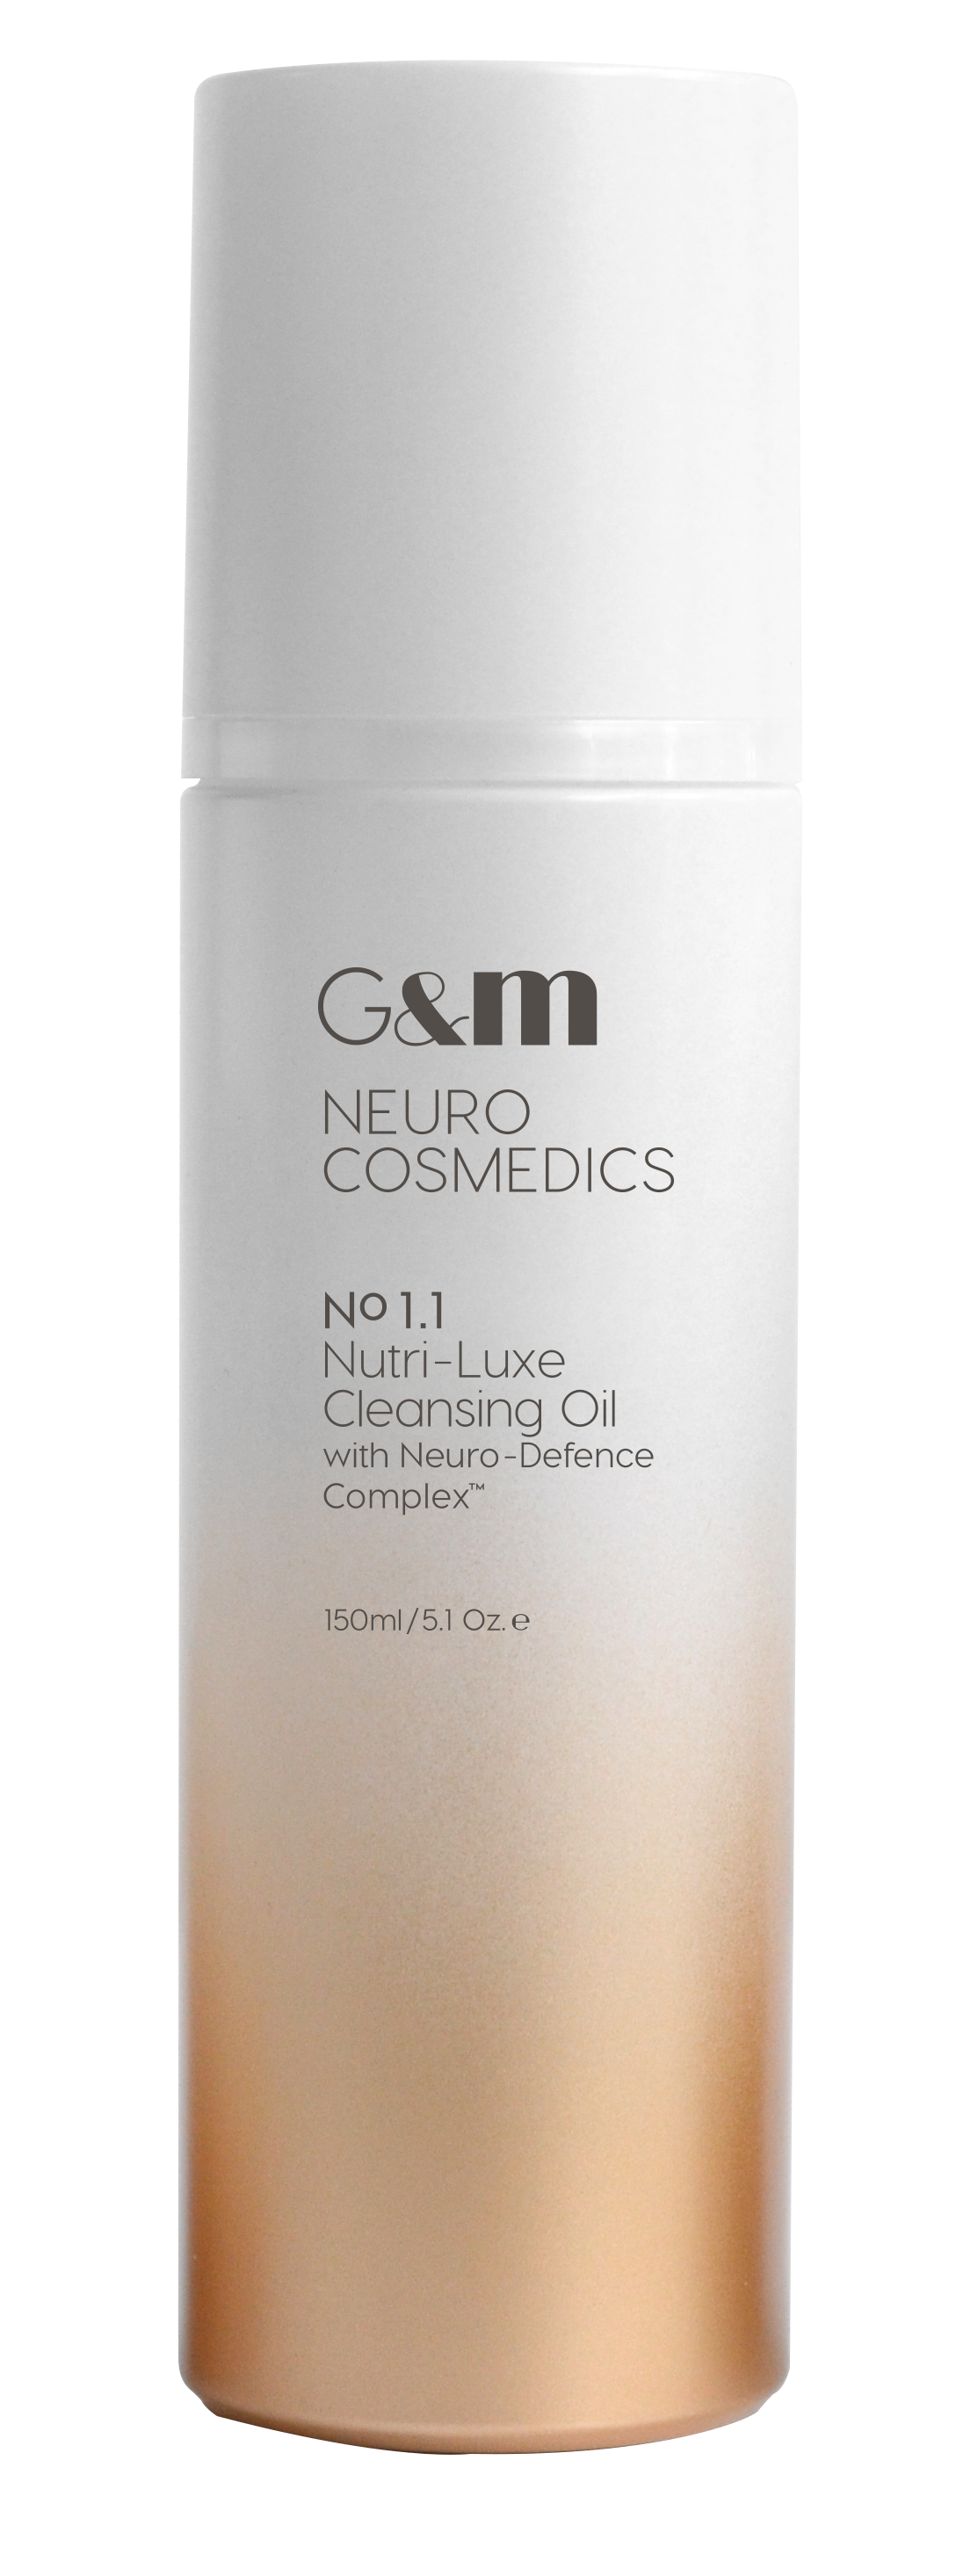 Nutri-Luxe Cleansing Oil